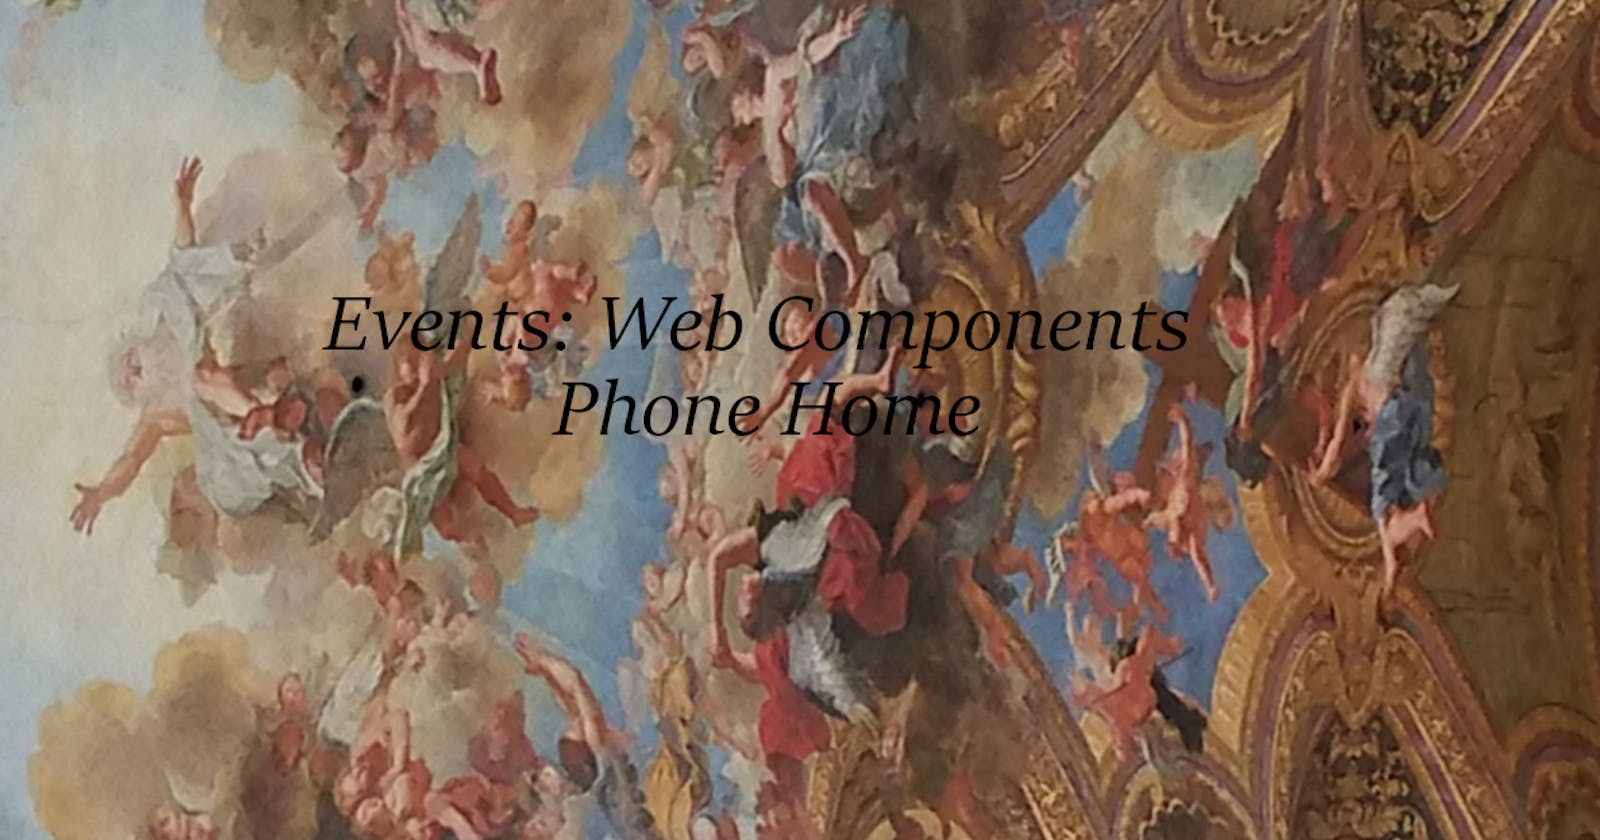 Events: Web Components Phone Home